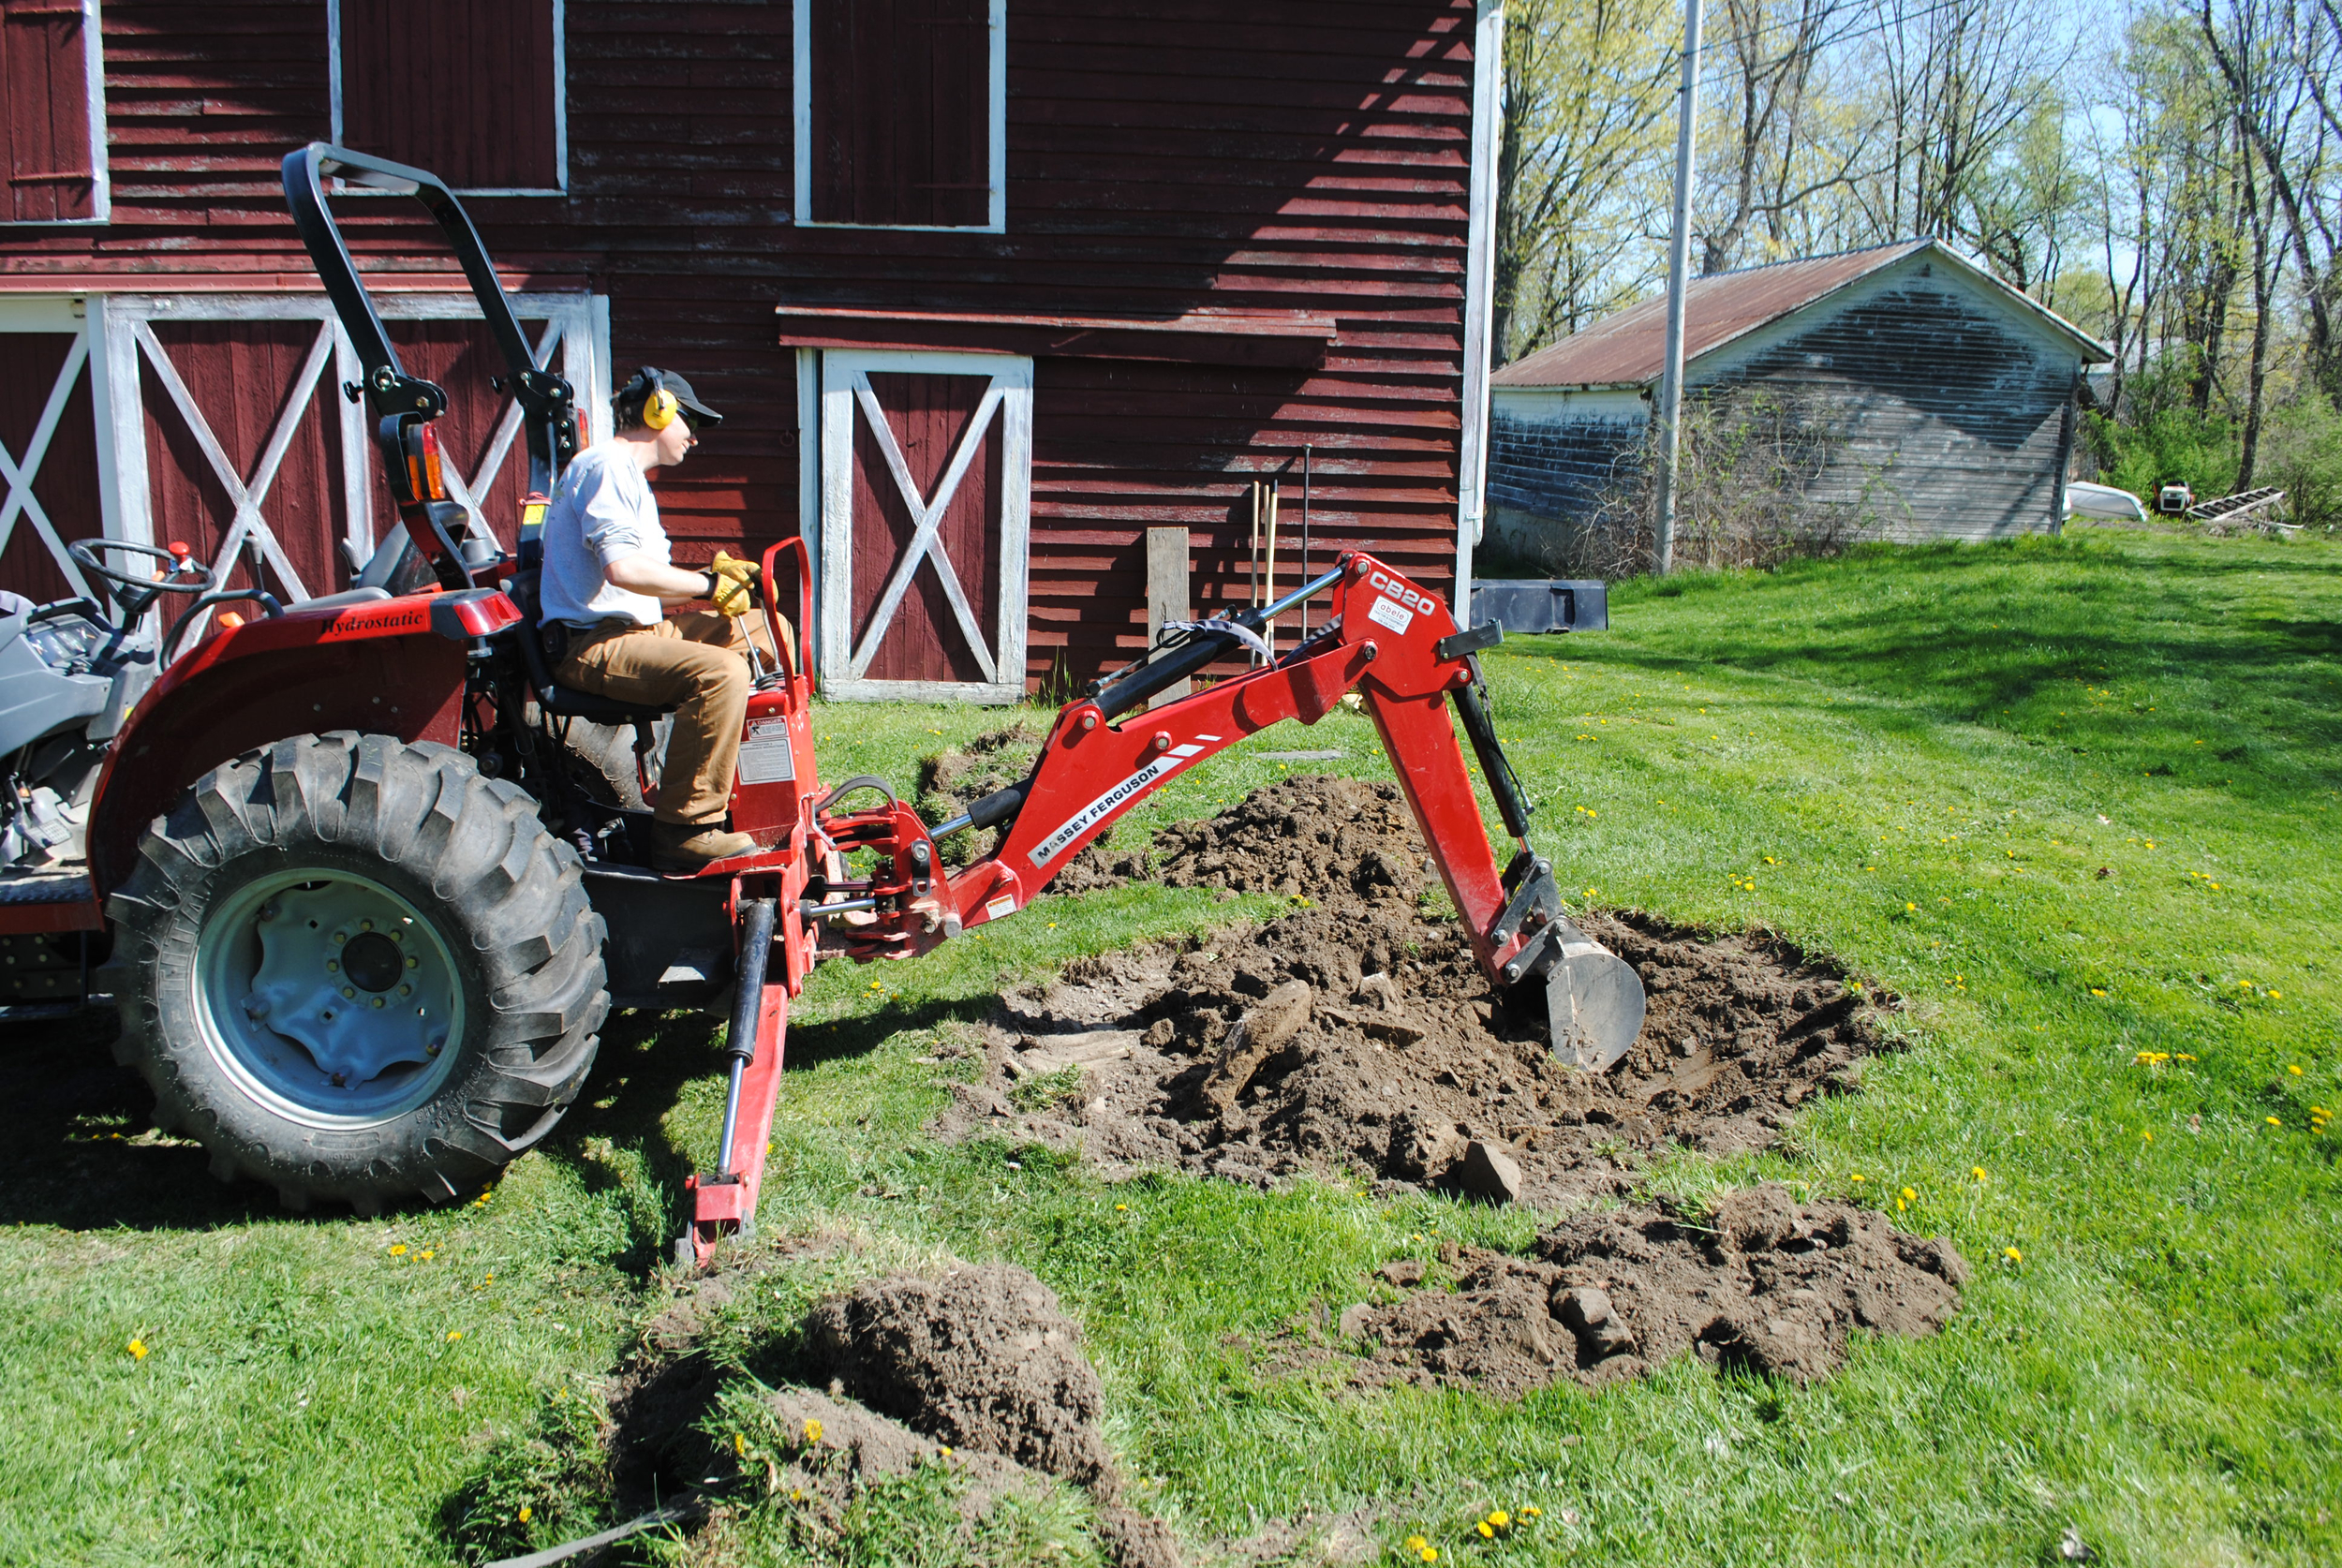 Arborist Peter Madsen digs a planting hole in preparation for planting a spruce tree.